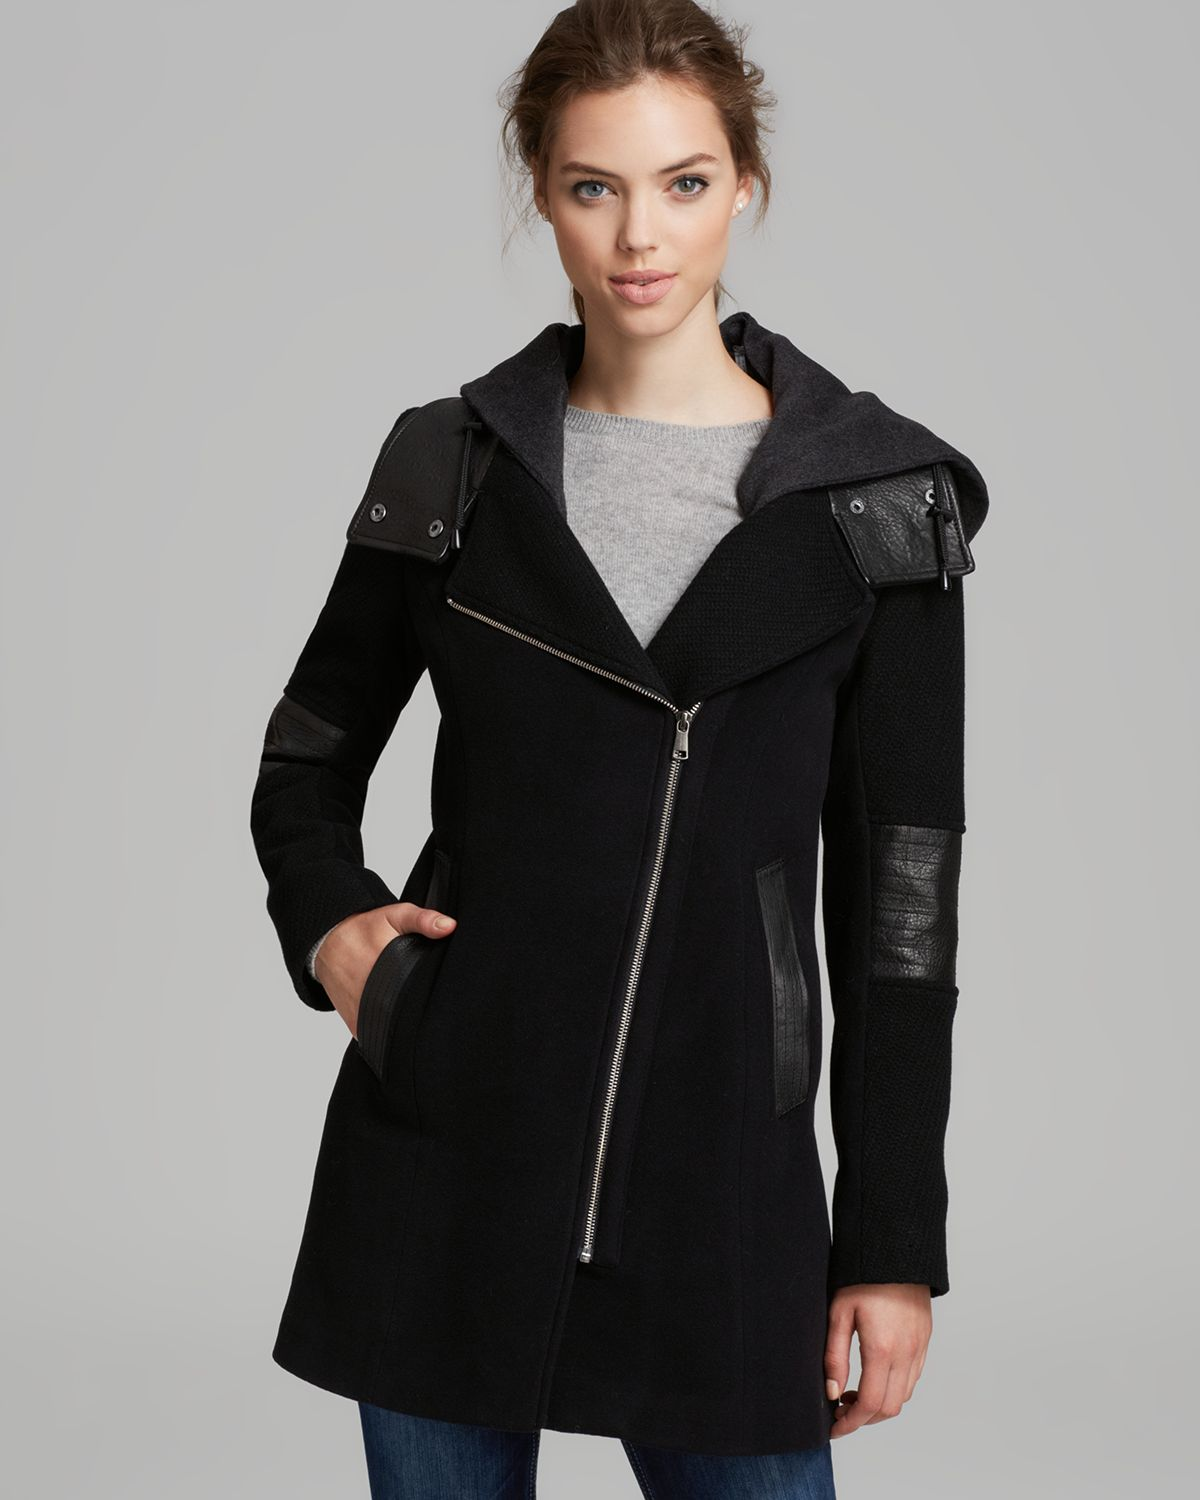 Andrew marc Coat Asymmetric Zip Leather Trim in Black | Lyst